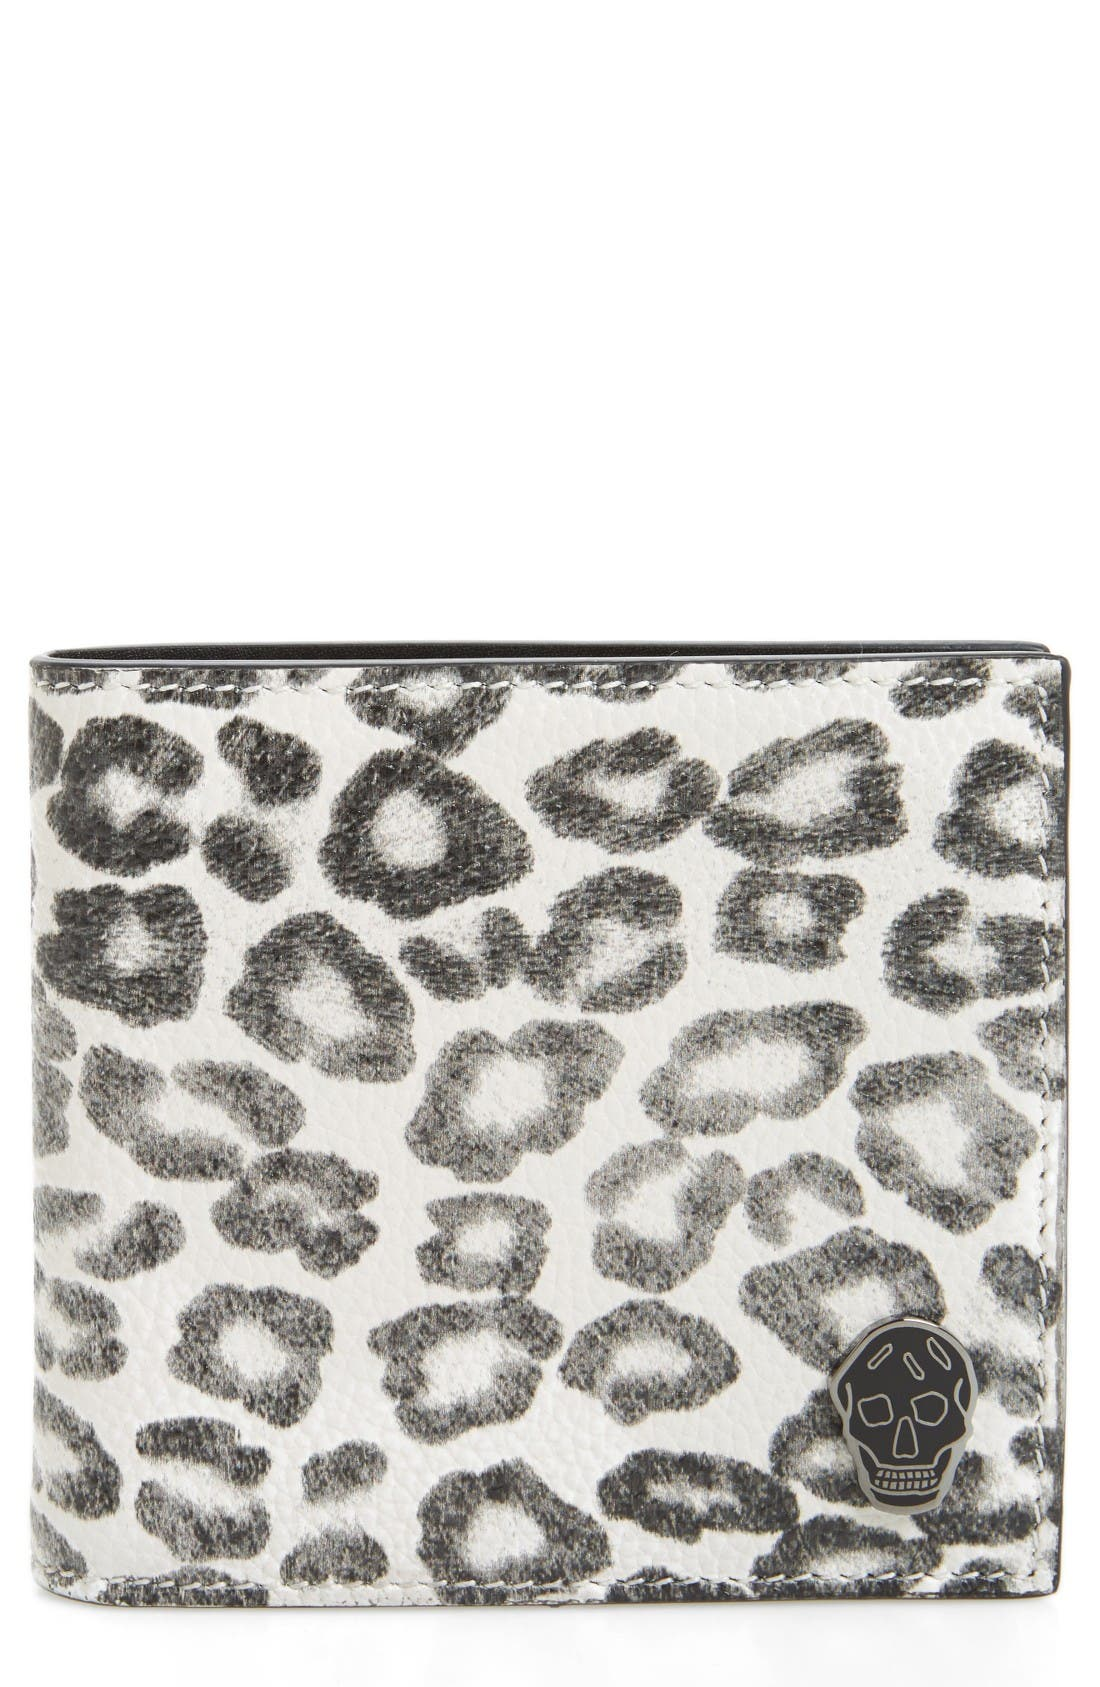 ALEXANDER MCQUEEN Leopard Print Leather Wallet